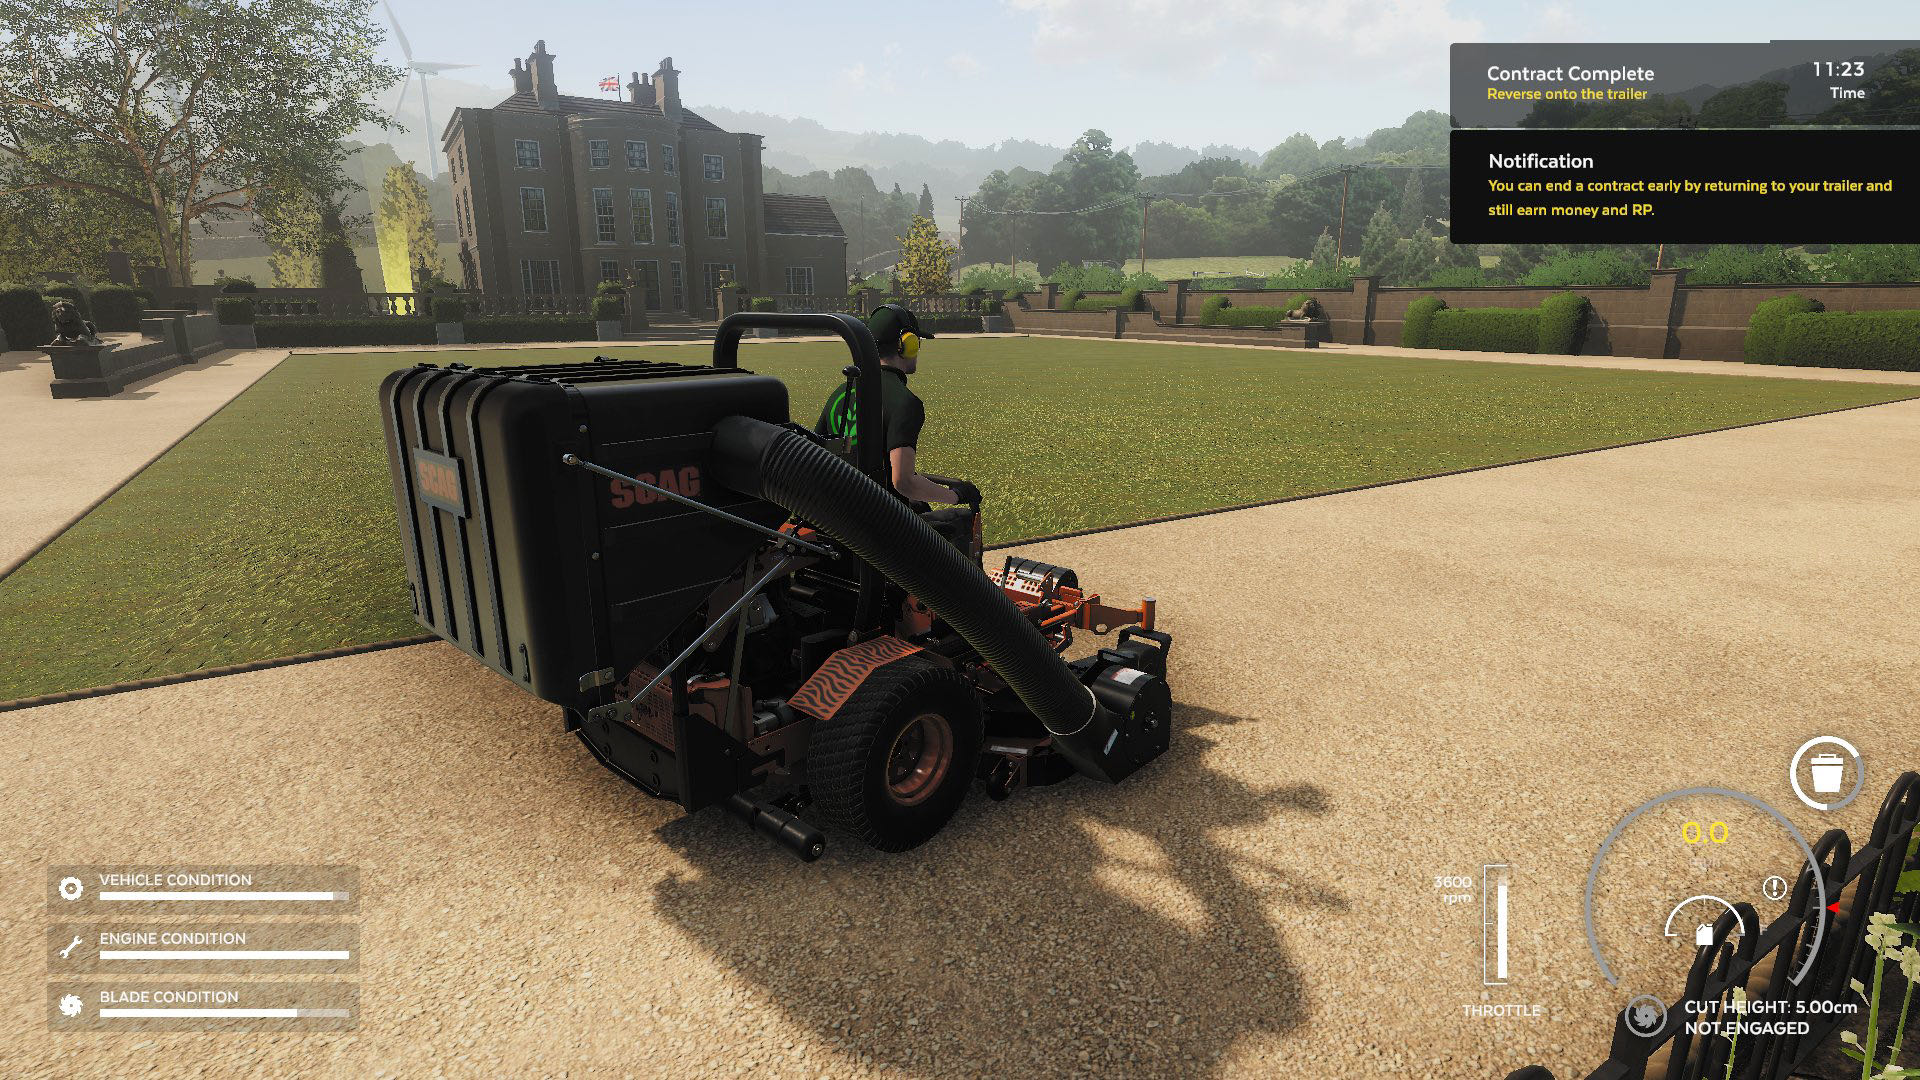 A close-up shot of your mower from Lawn Mowing Simulator, showing the condition, contract status and HUD.